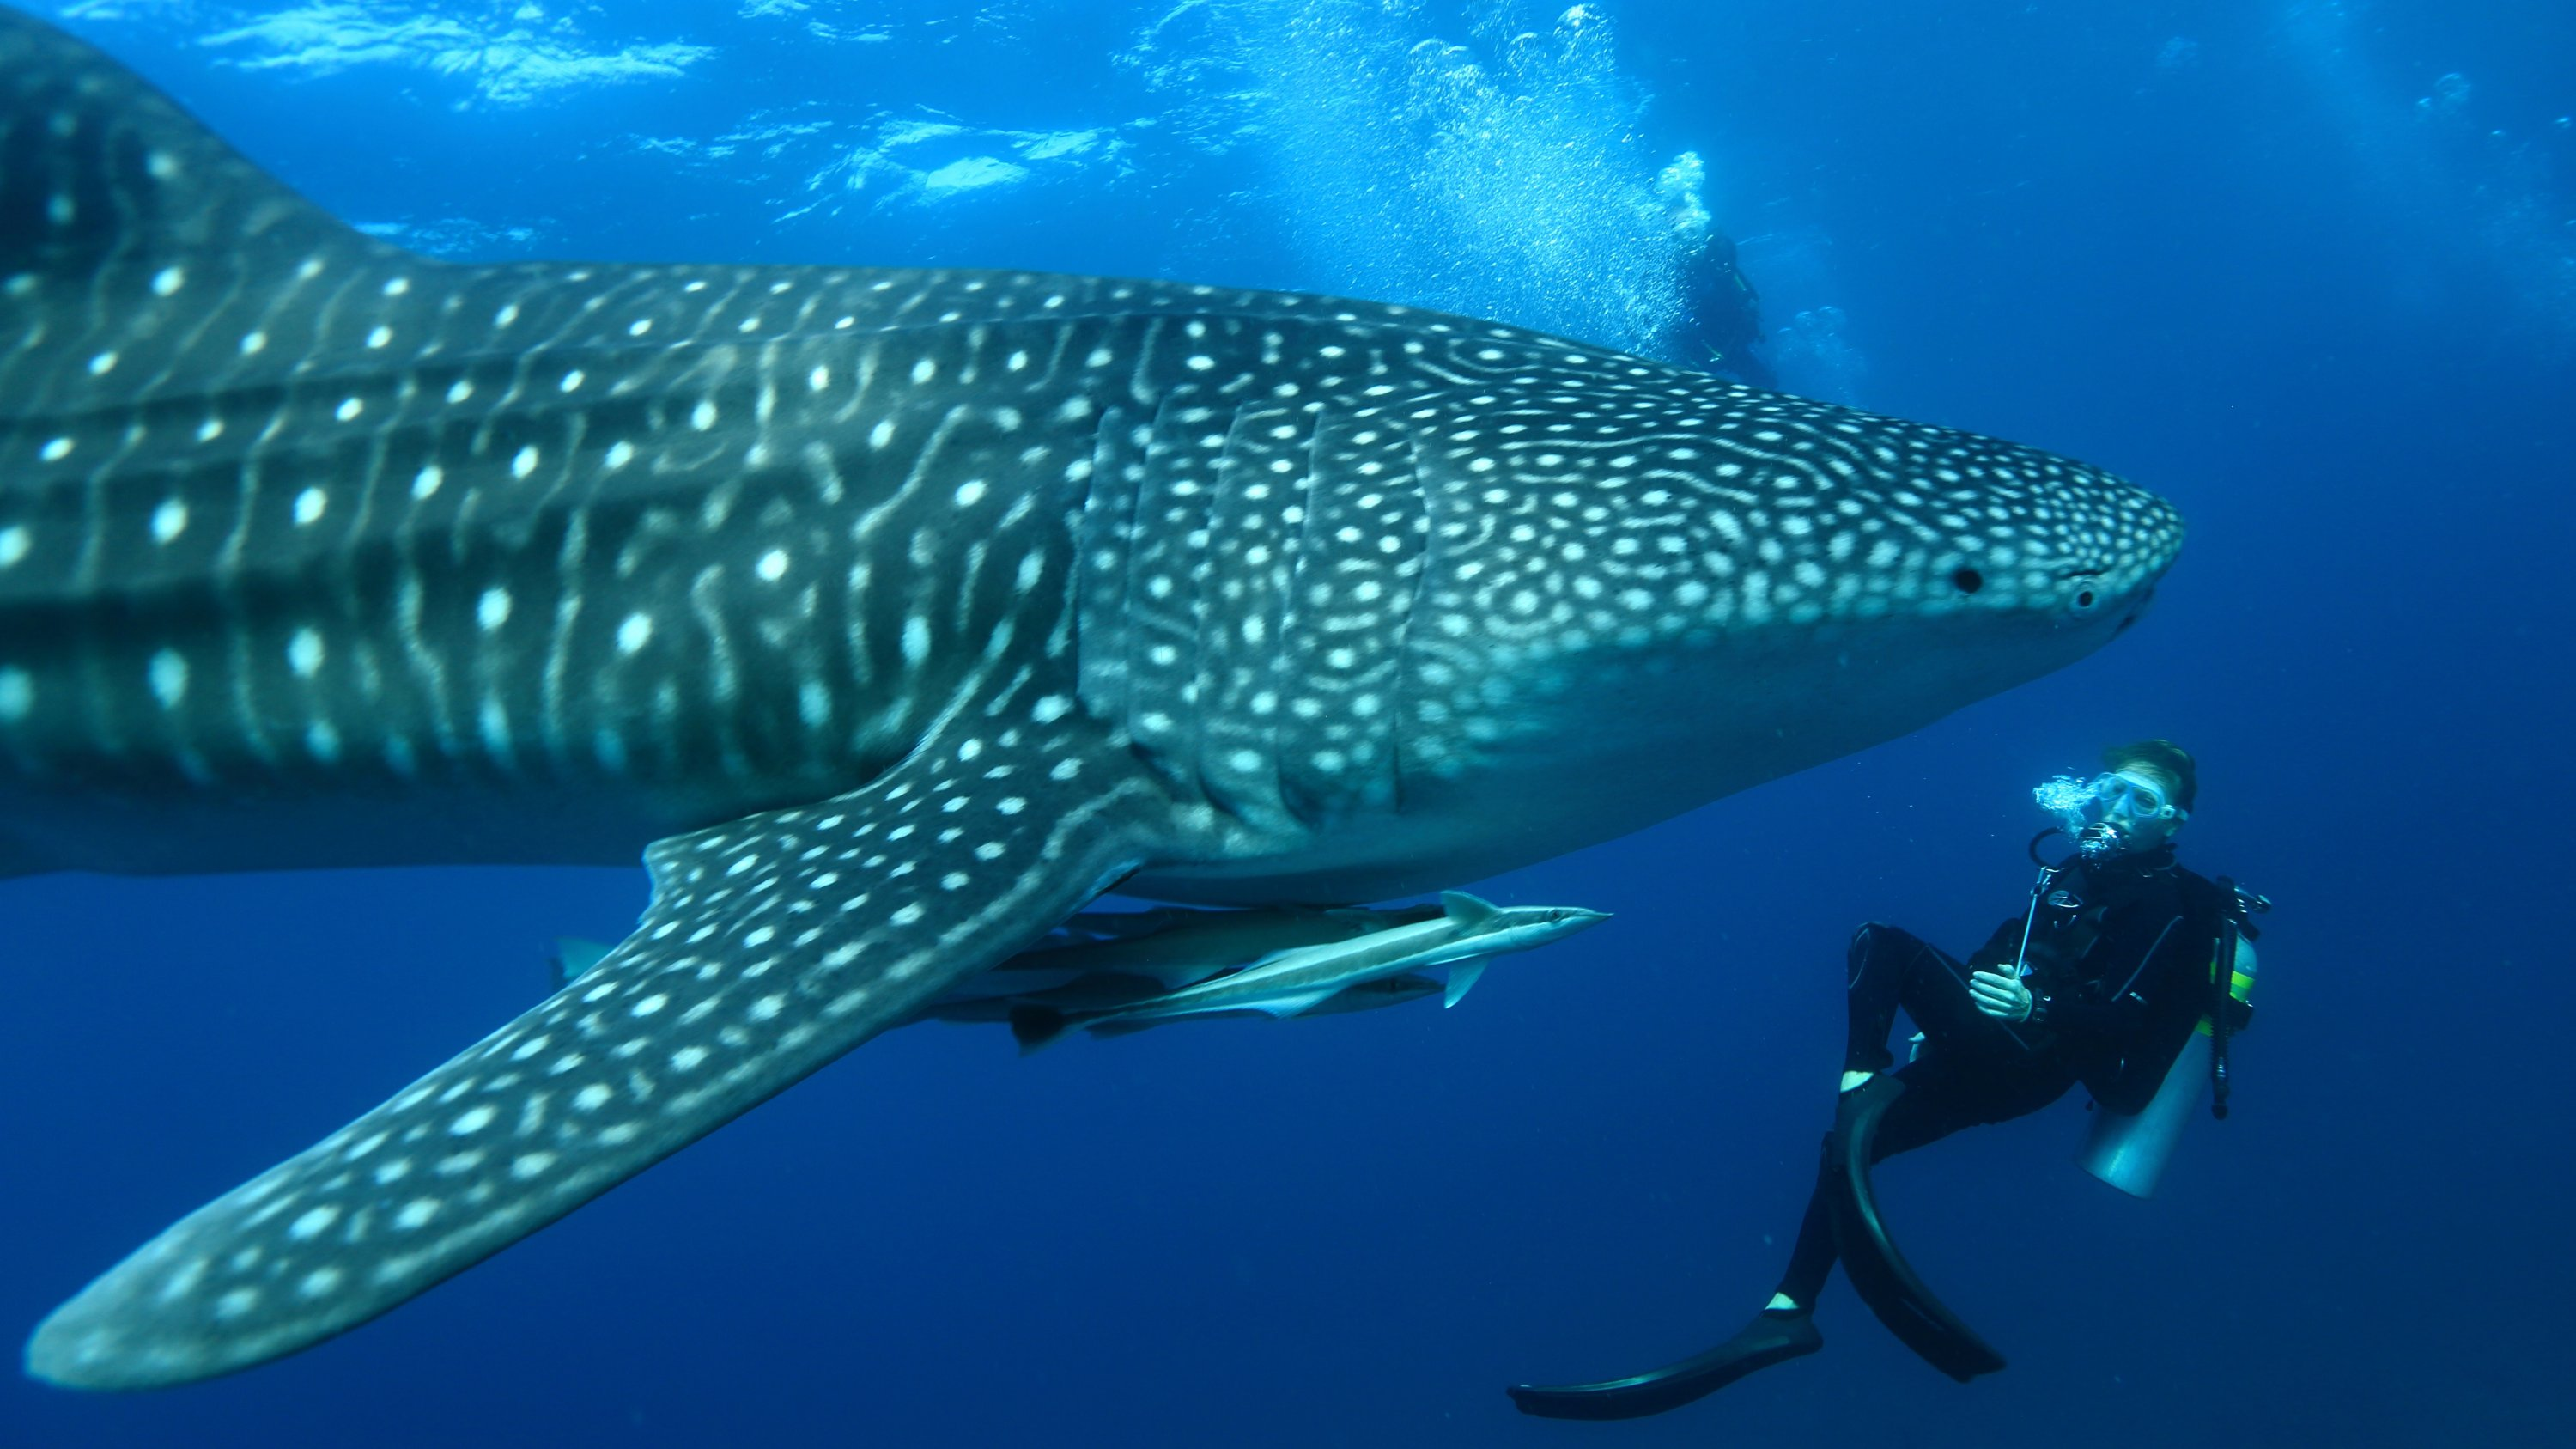 South Ari Atoll, where Mirihi is located, is one of the best places in the Maldives for chance to spot whale sharks, the gentle giants of the oceans. (Photo courtesy of Mirihi Maldives)